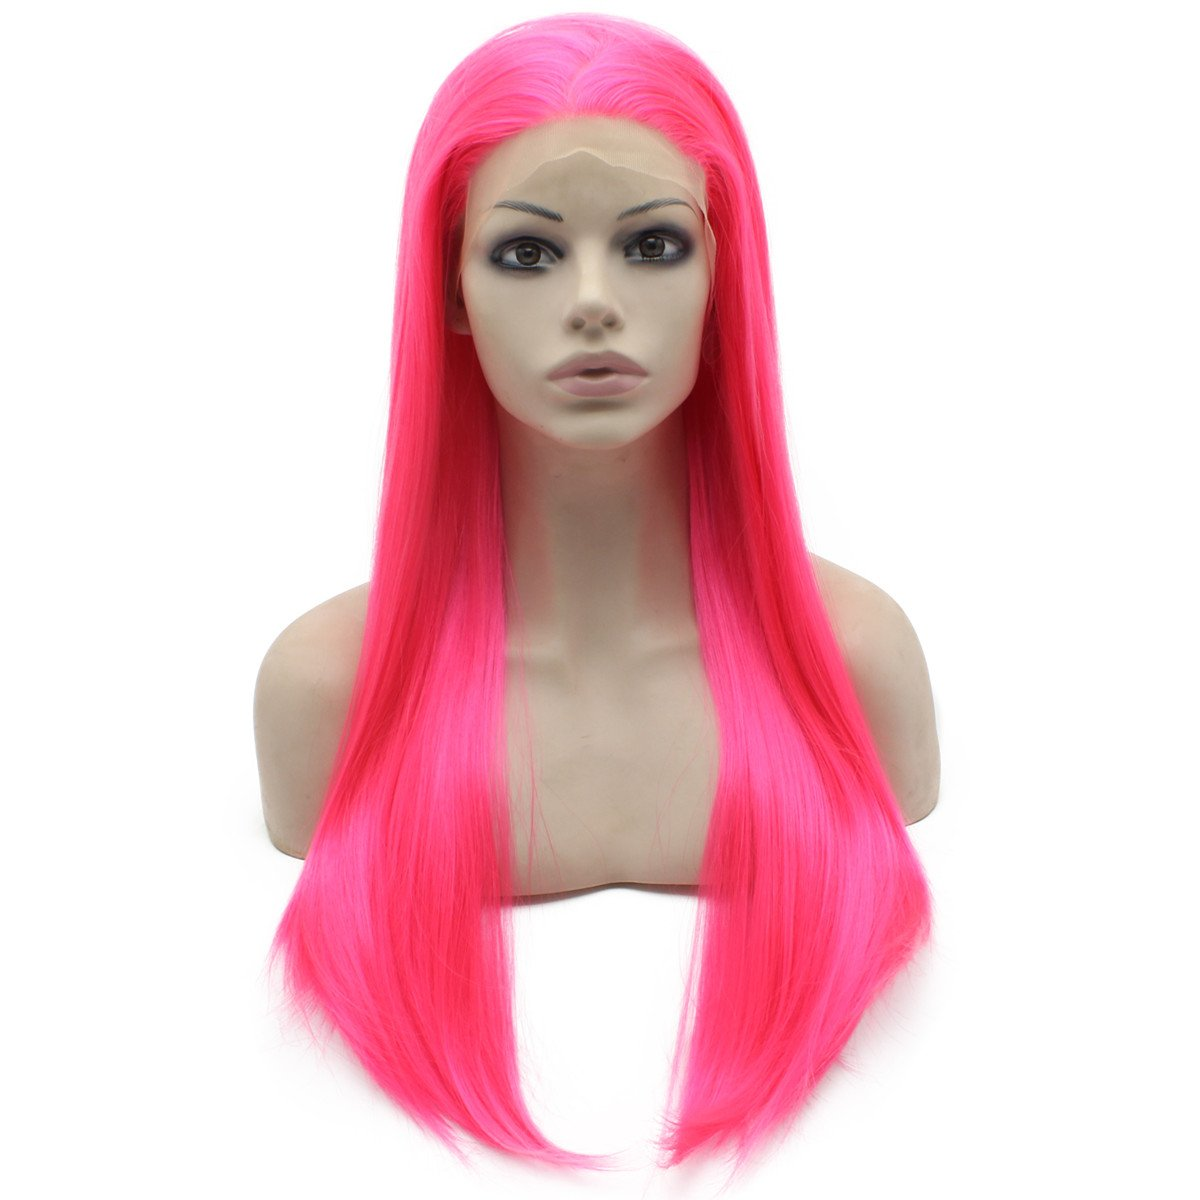 Mxangel Long Straight Hot Pink Costume Synthetic Front lace 2021 model Part Tulsa Mall